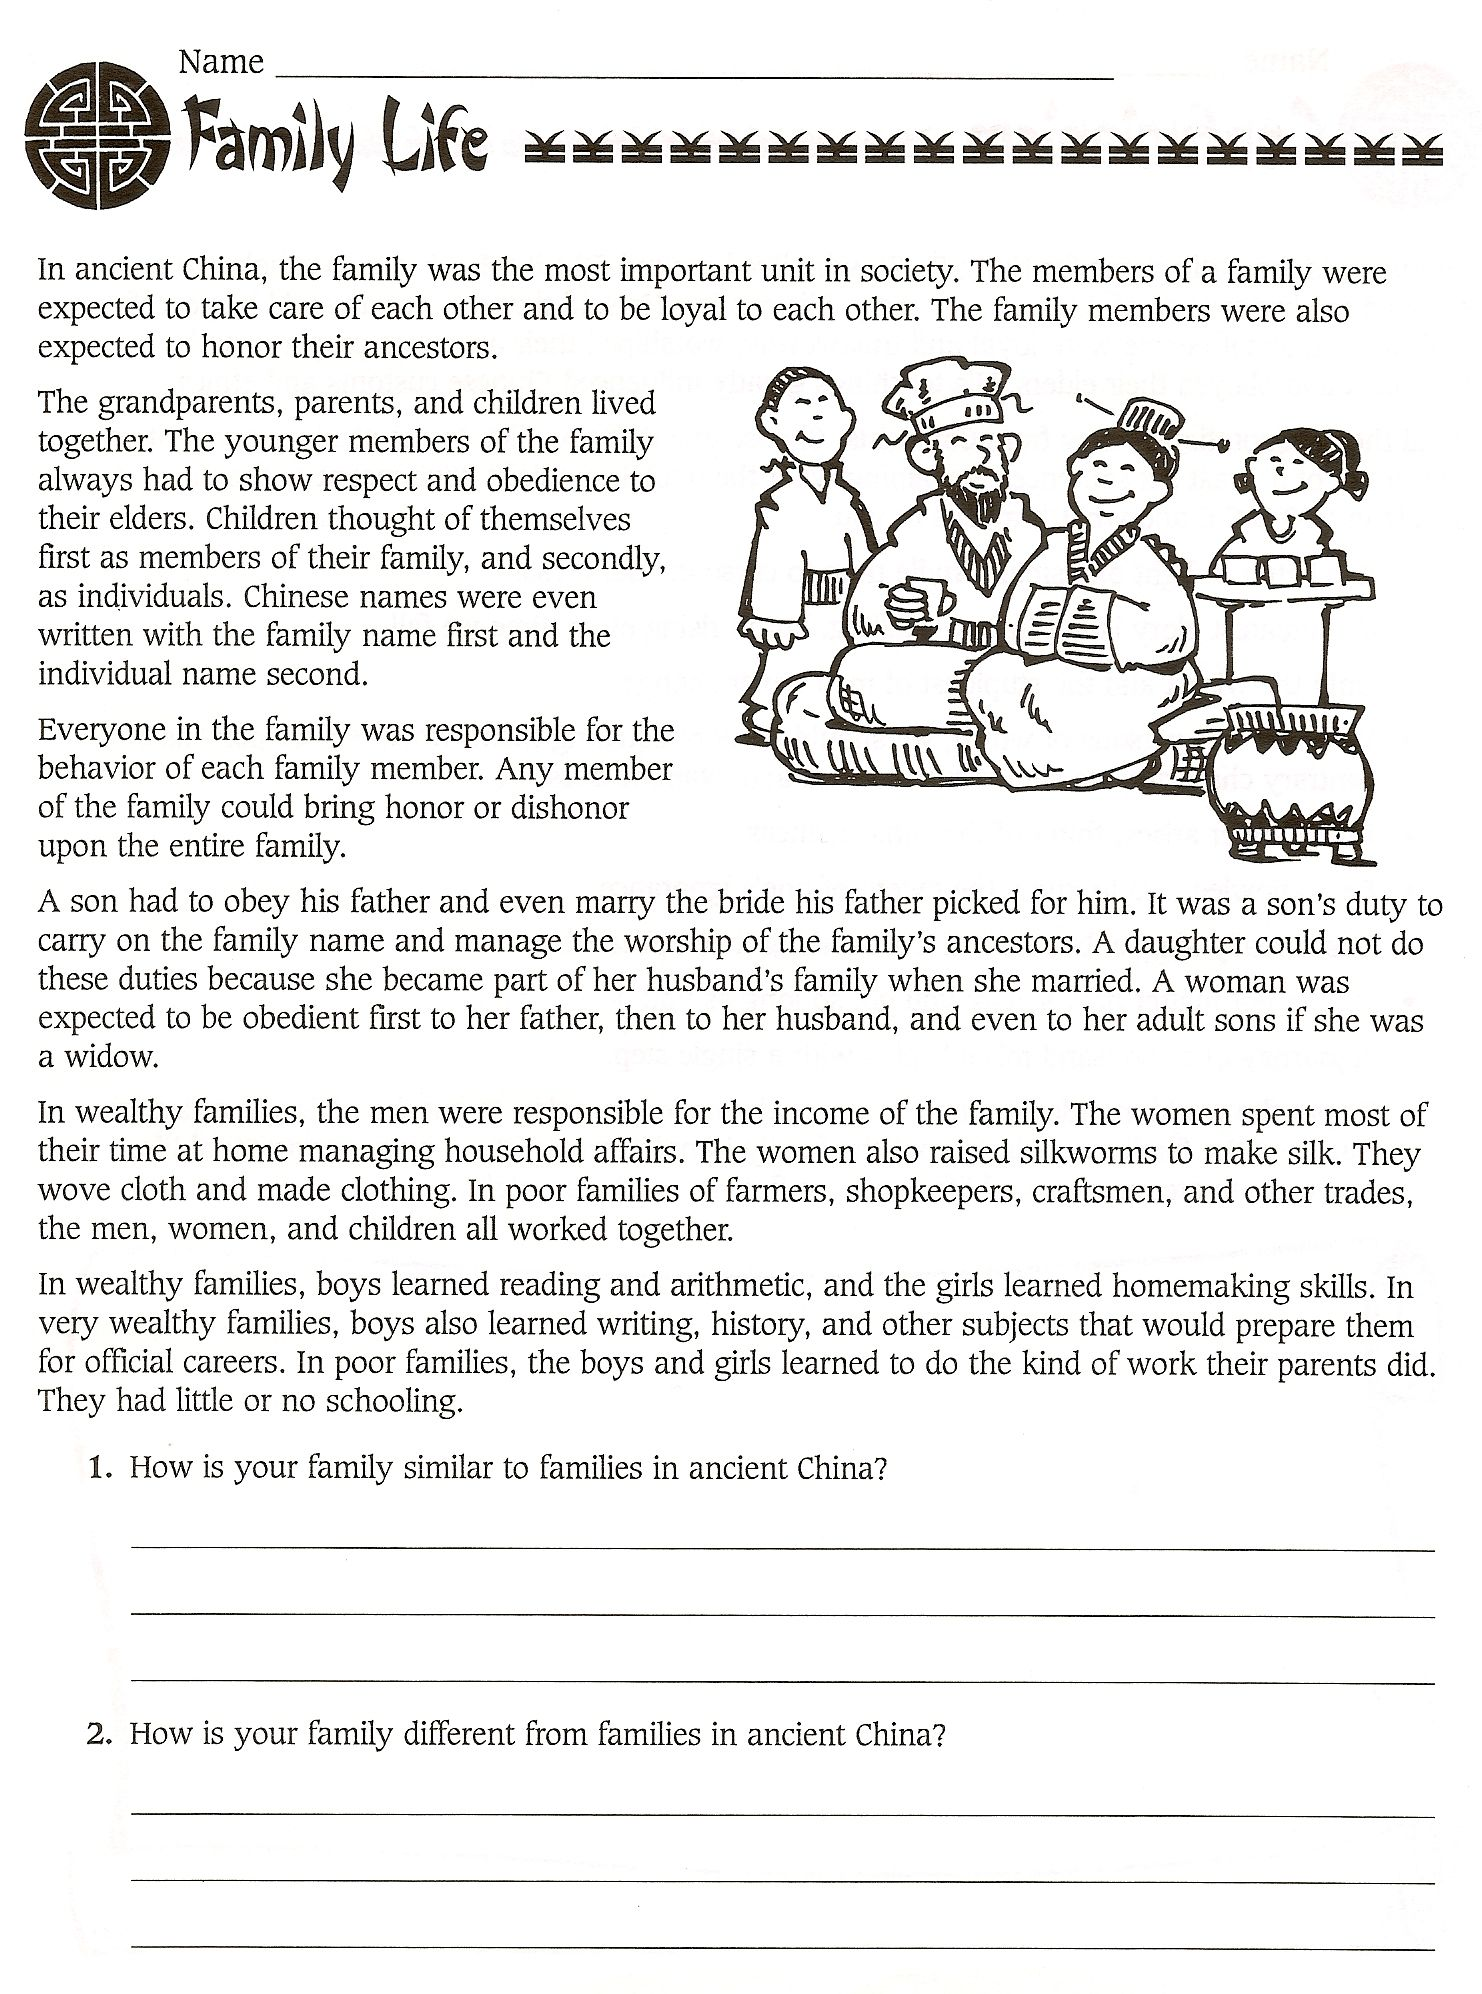 Worksheet For Grade 3 Life Skills